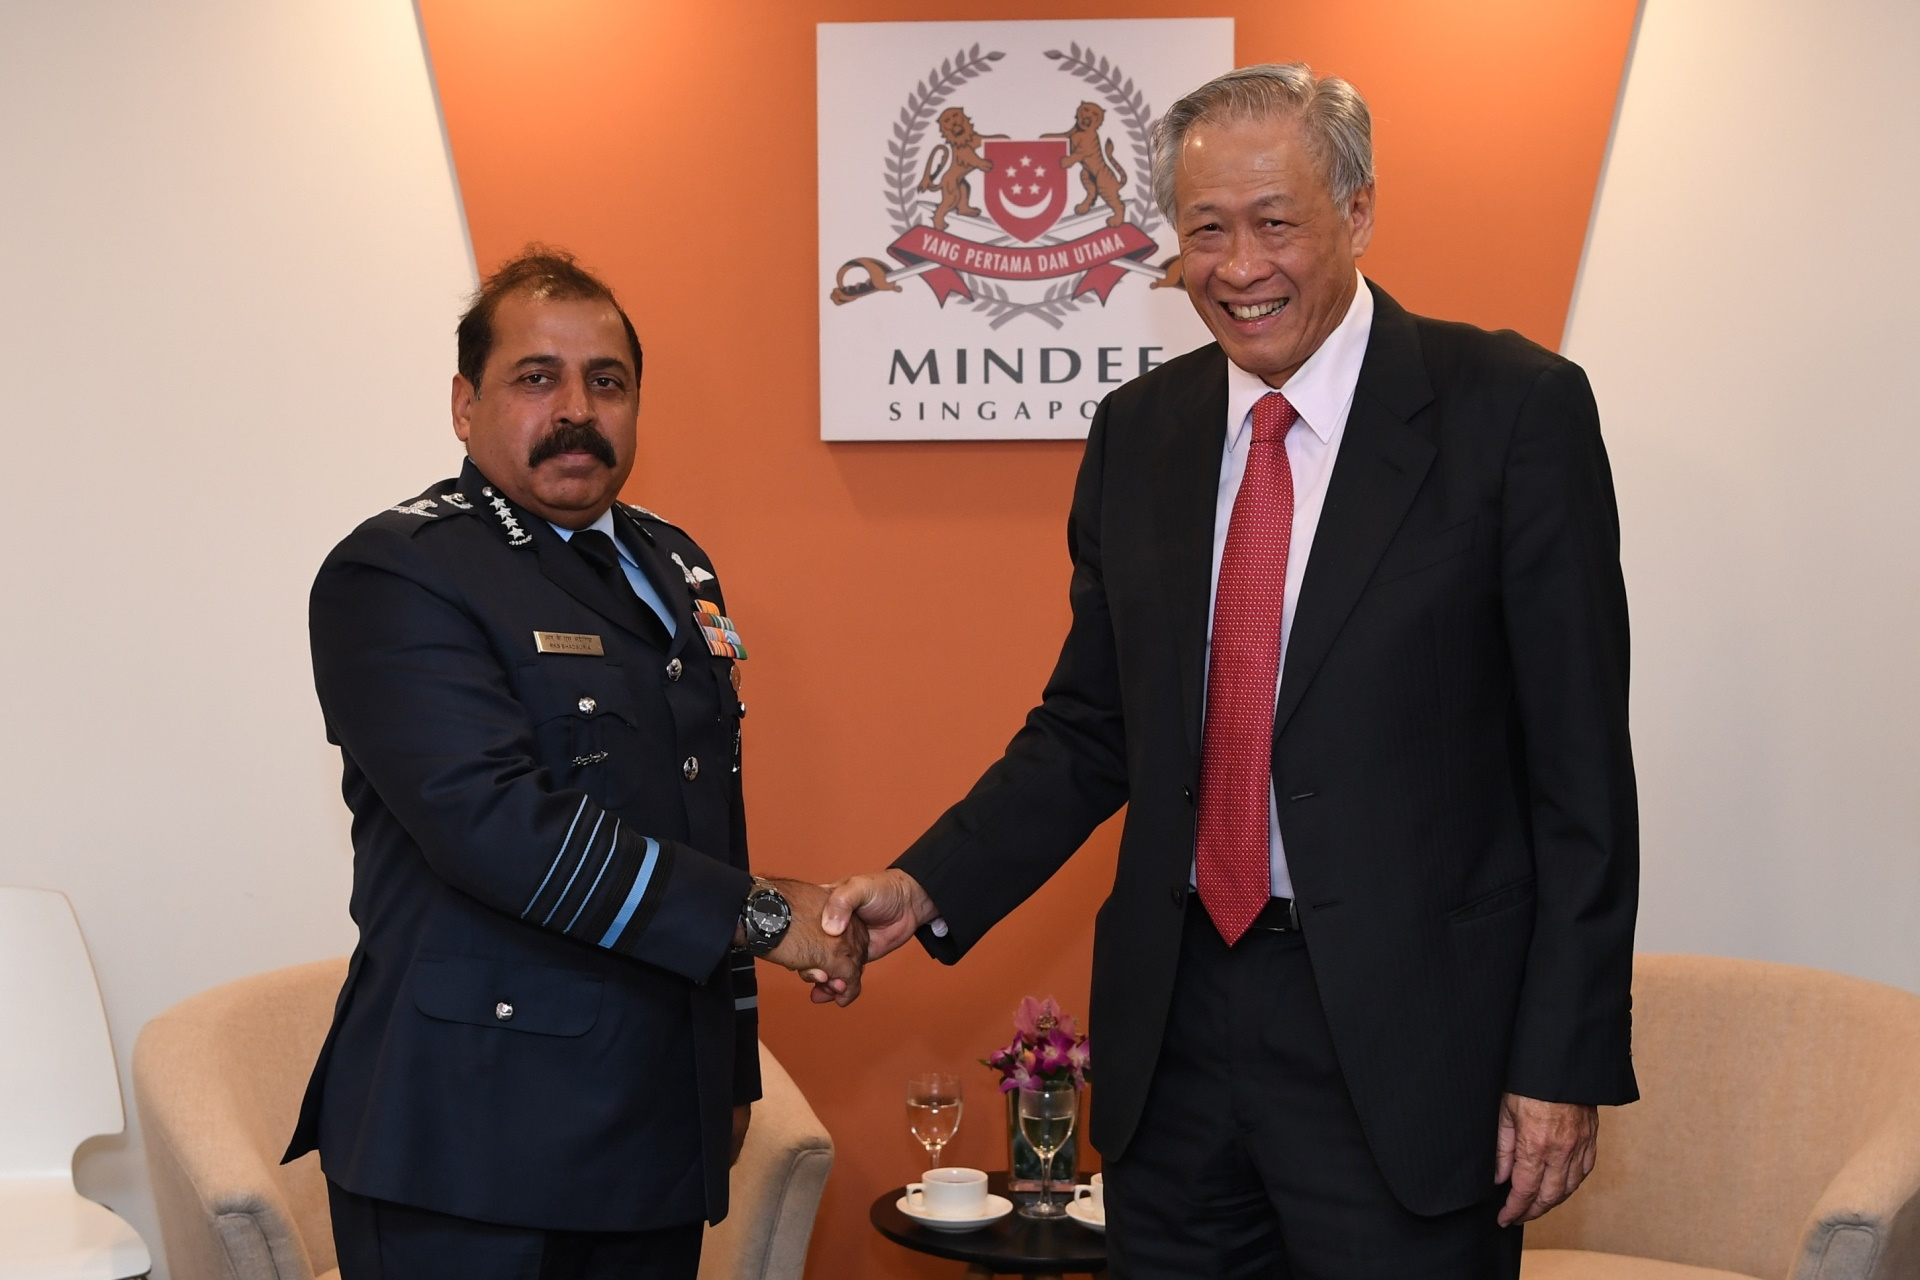 Indian Chief of Air Staff Air Chief Marshal Rakesh Kumar Singh Bhadauria (left) calling on Dr Ng earlier today.